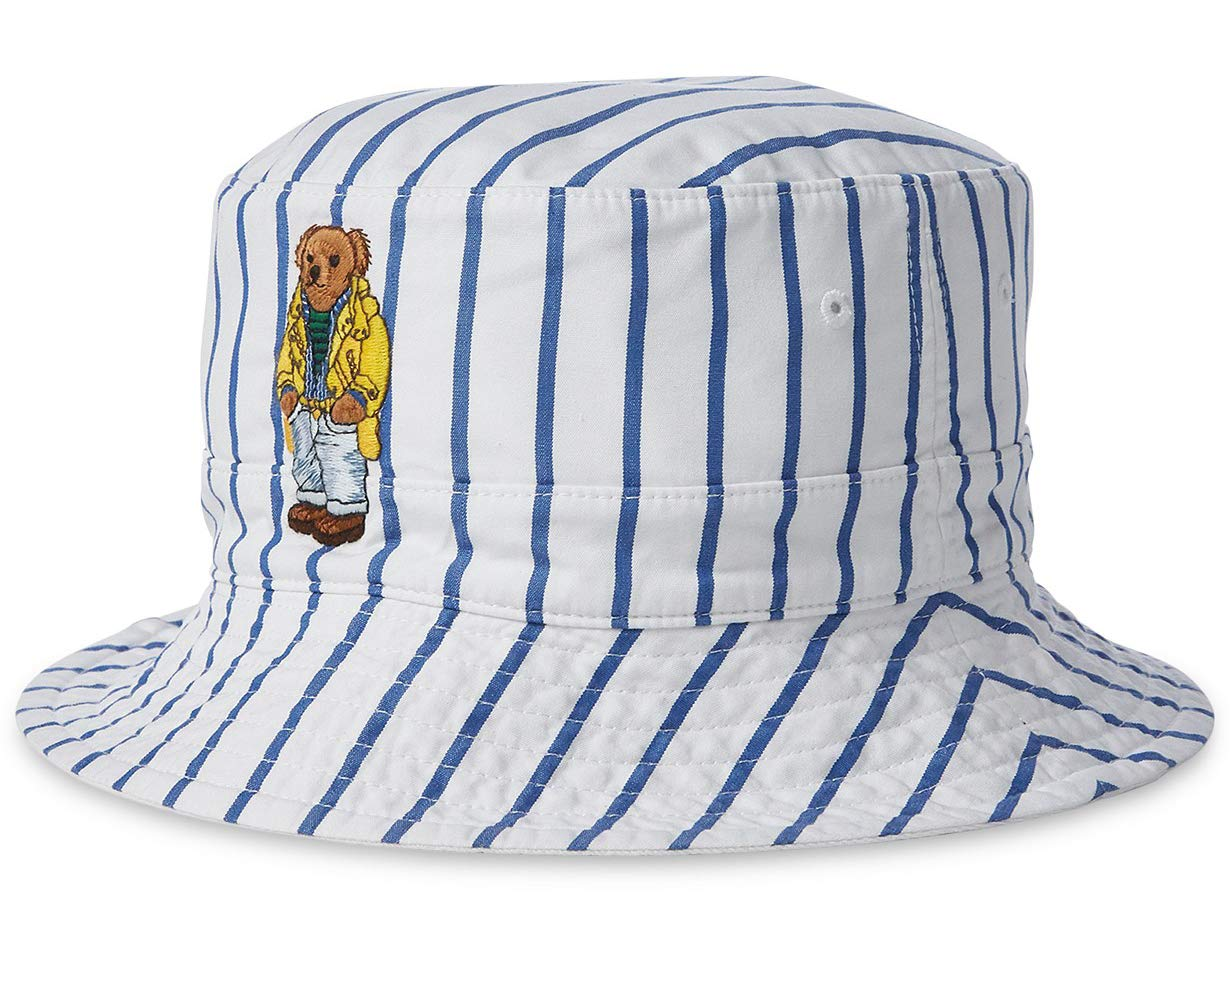 Polo Ralph Lauren Print Reversible Bucket Hat (Small/Medium, Blue(4001)/White Stripe) by Polo Ralph Lauren